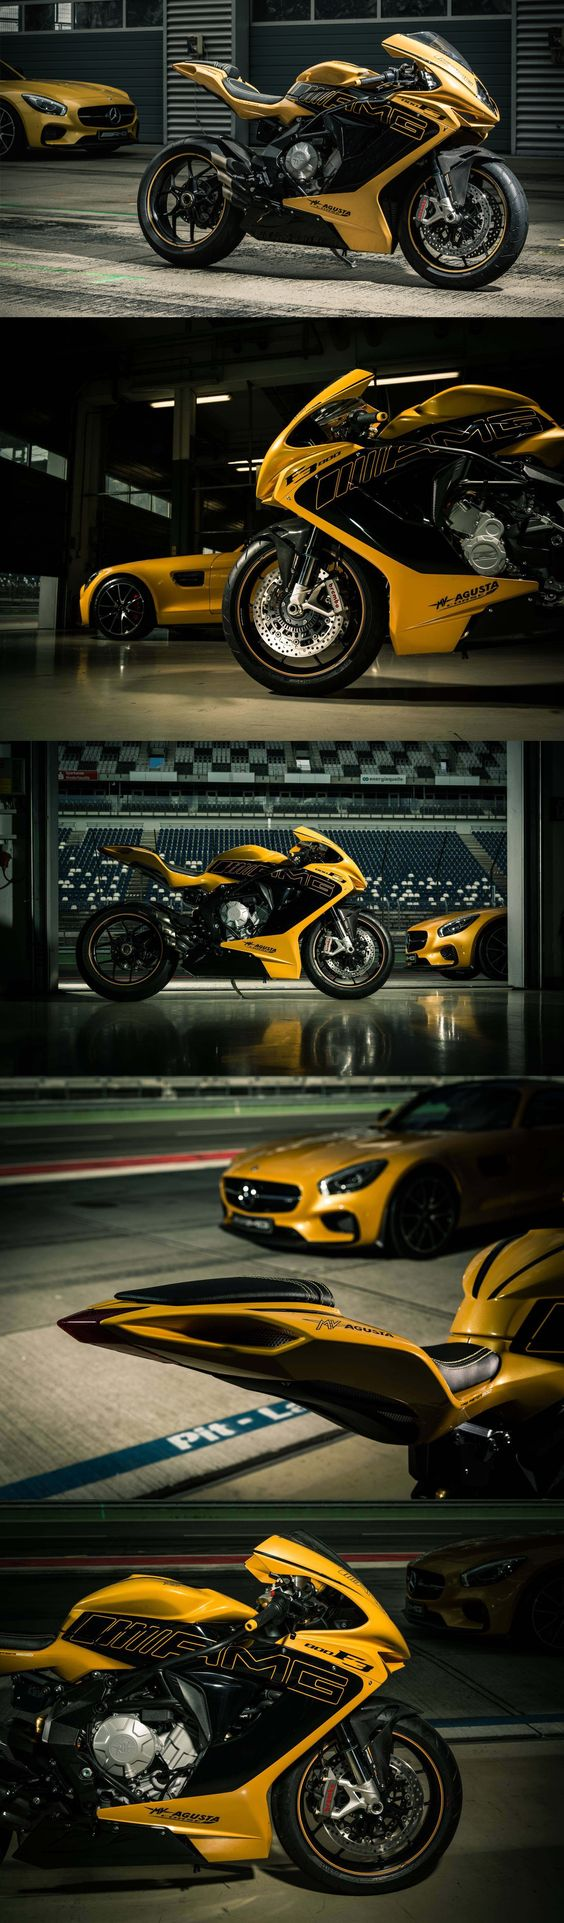 """MV Agusta F3 800 """"Solar Beam"""" Edition with Mercedes-AMG GT. The yellow paint job makes me so happy."""